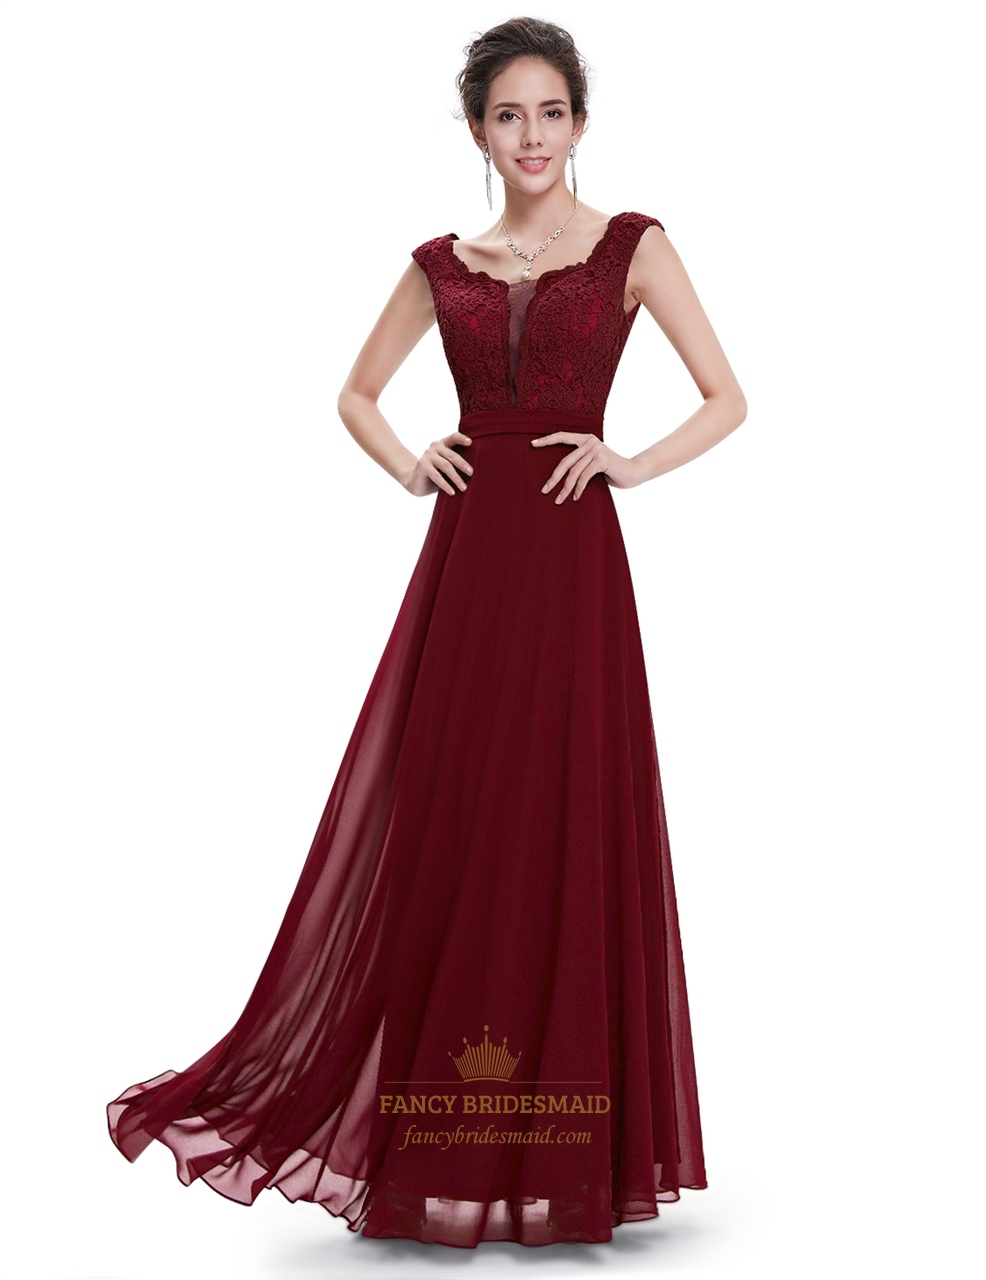 Burgundy chiffon cap sleeves long bridesmaid dresses with lace burgundy chiffon cap sleeves long bridesmaid dresses with lace bodice ombrellifo Gallery